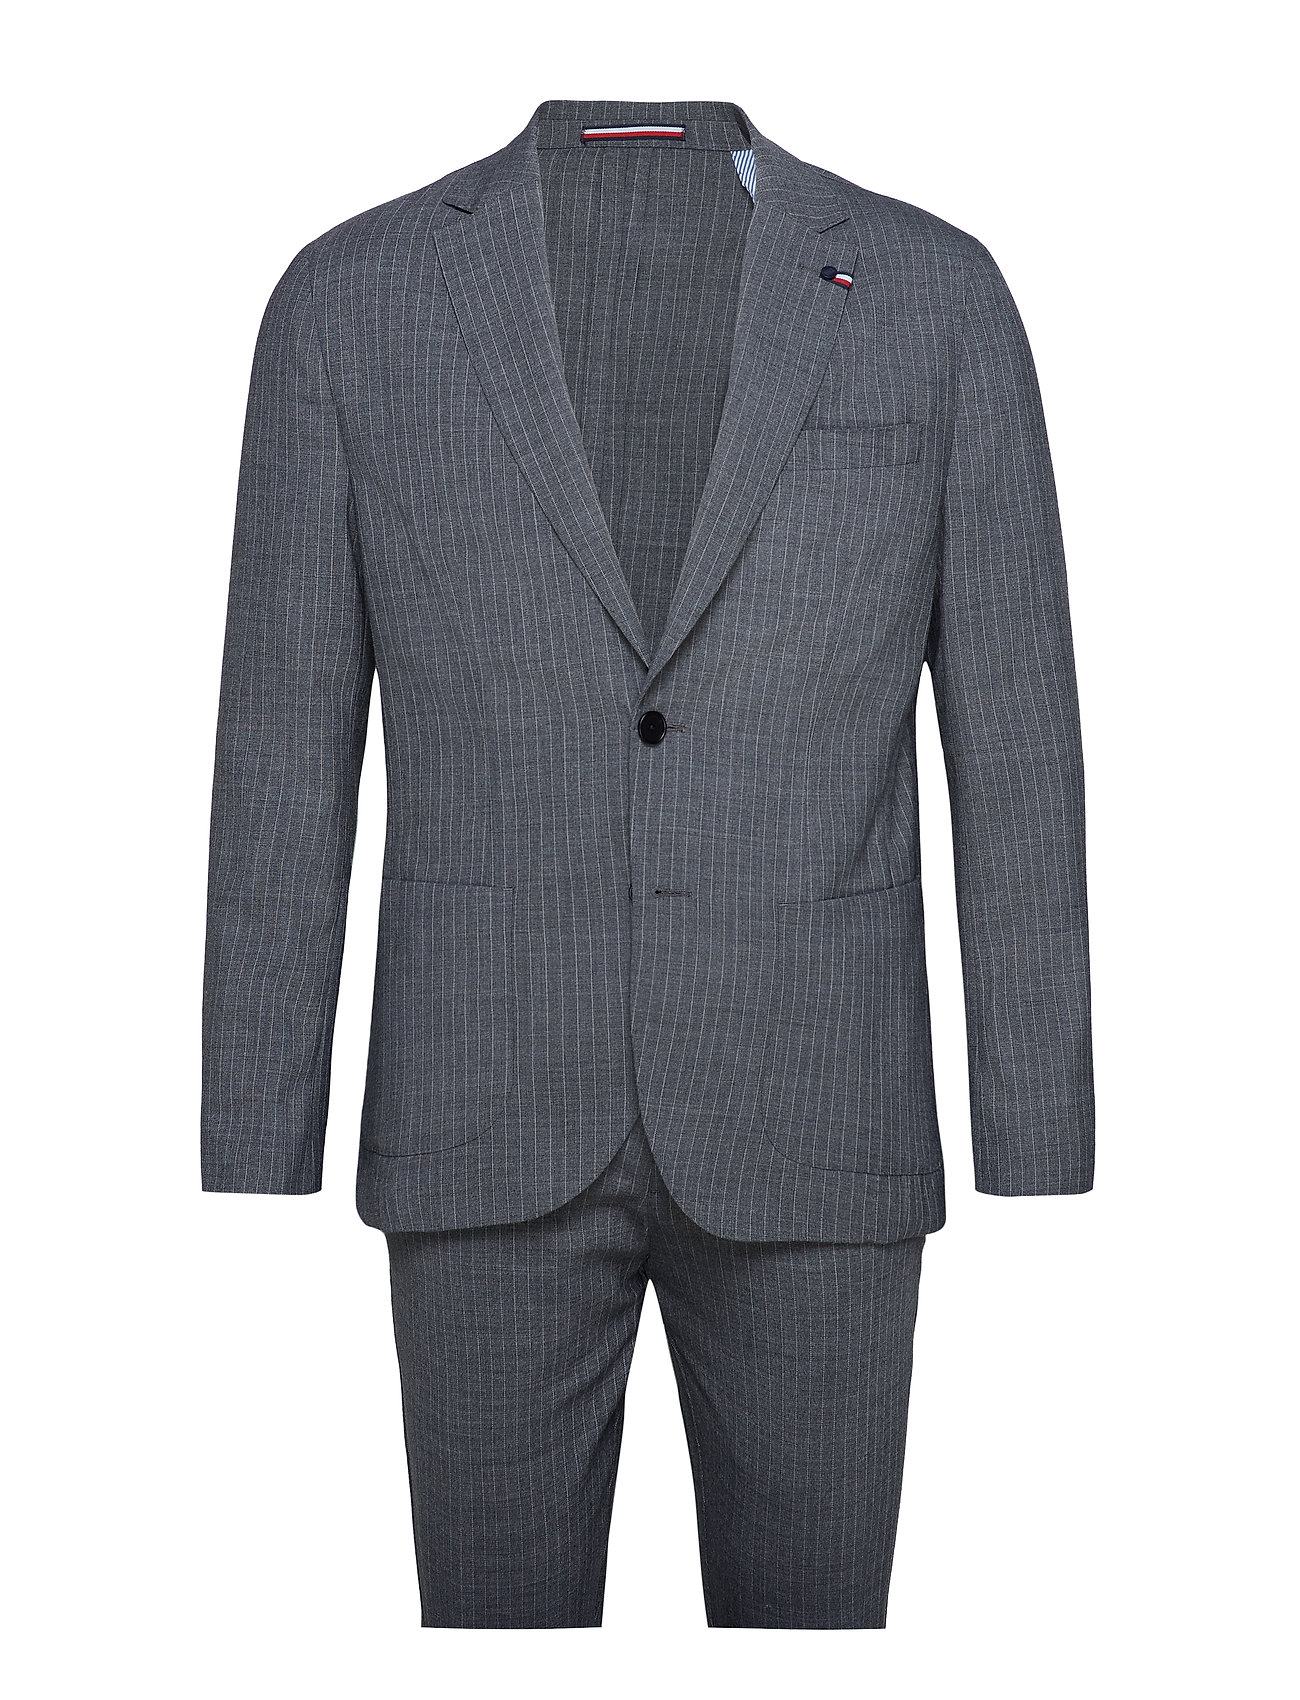 Tommy Hilfiger Tailored WASHABLE WOOL BLEND  SLIM SUIT - CHARCOAL